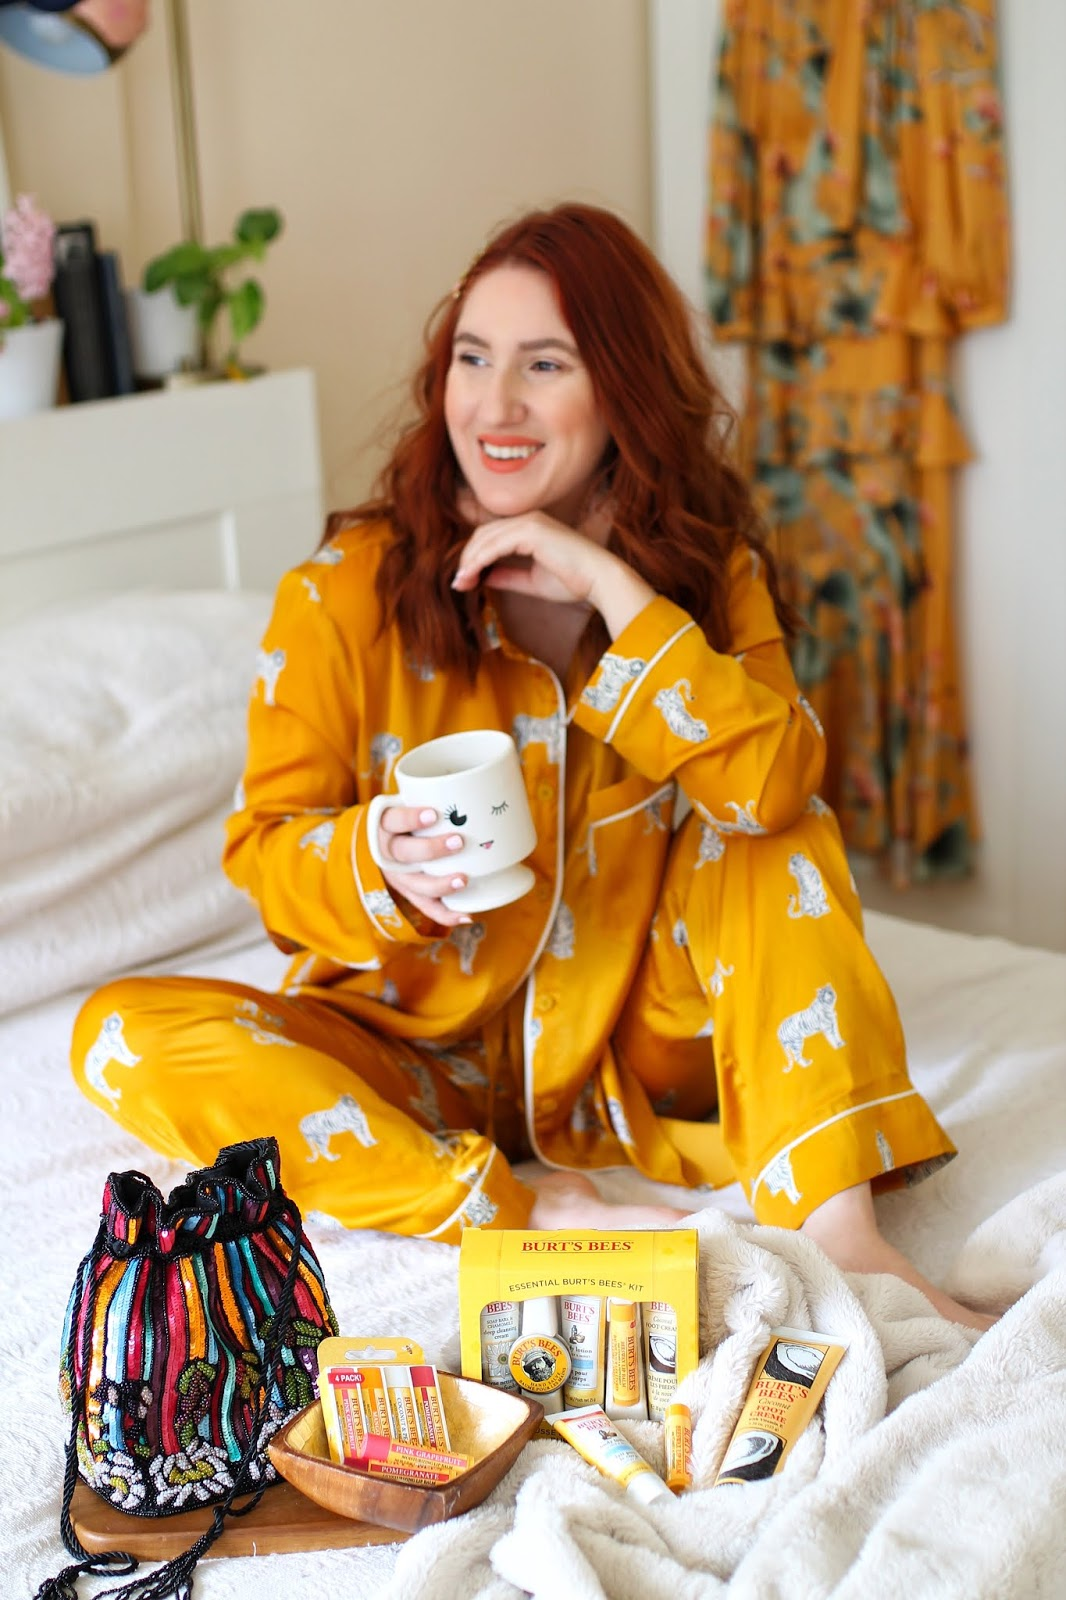 10 Ways To Pamper Yourself At Home, at home pampering, self care at home, mothers day pampering at home, Burt's Bees tfdiaries, Burts bees pampering, mothers day spa day at home